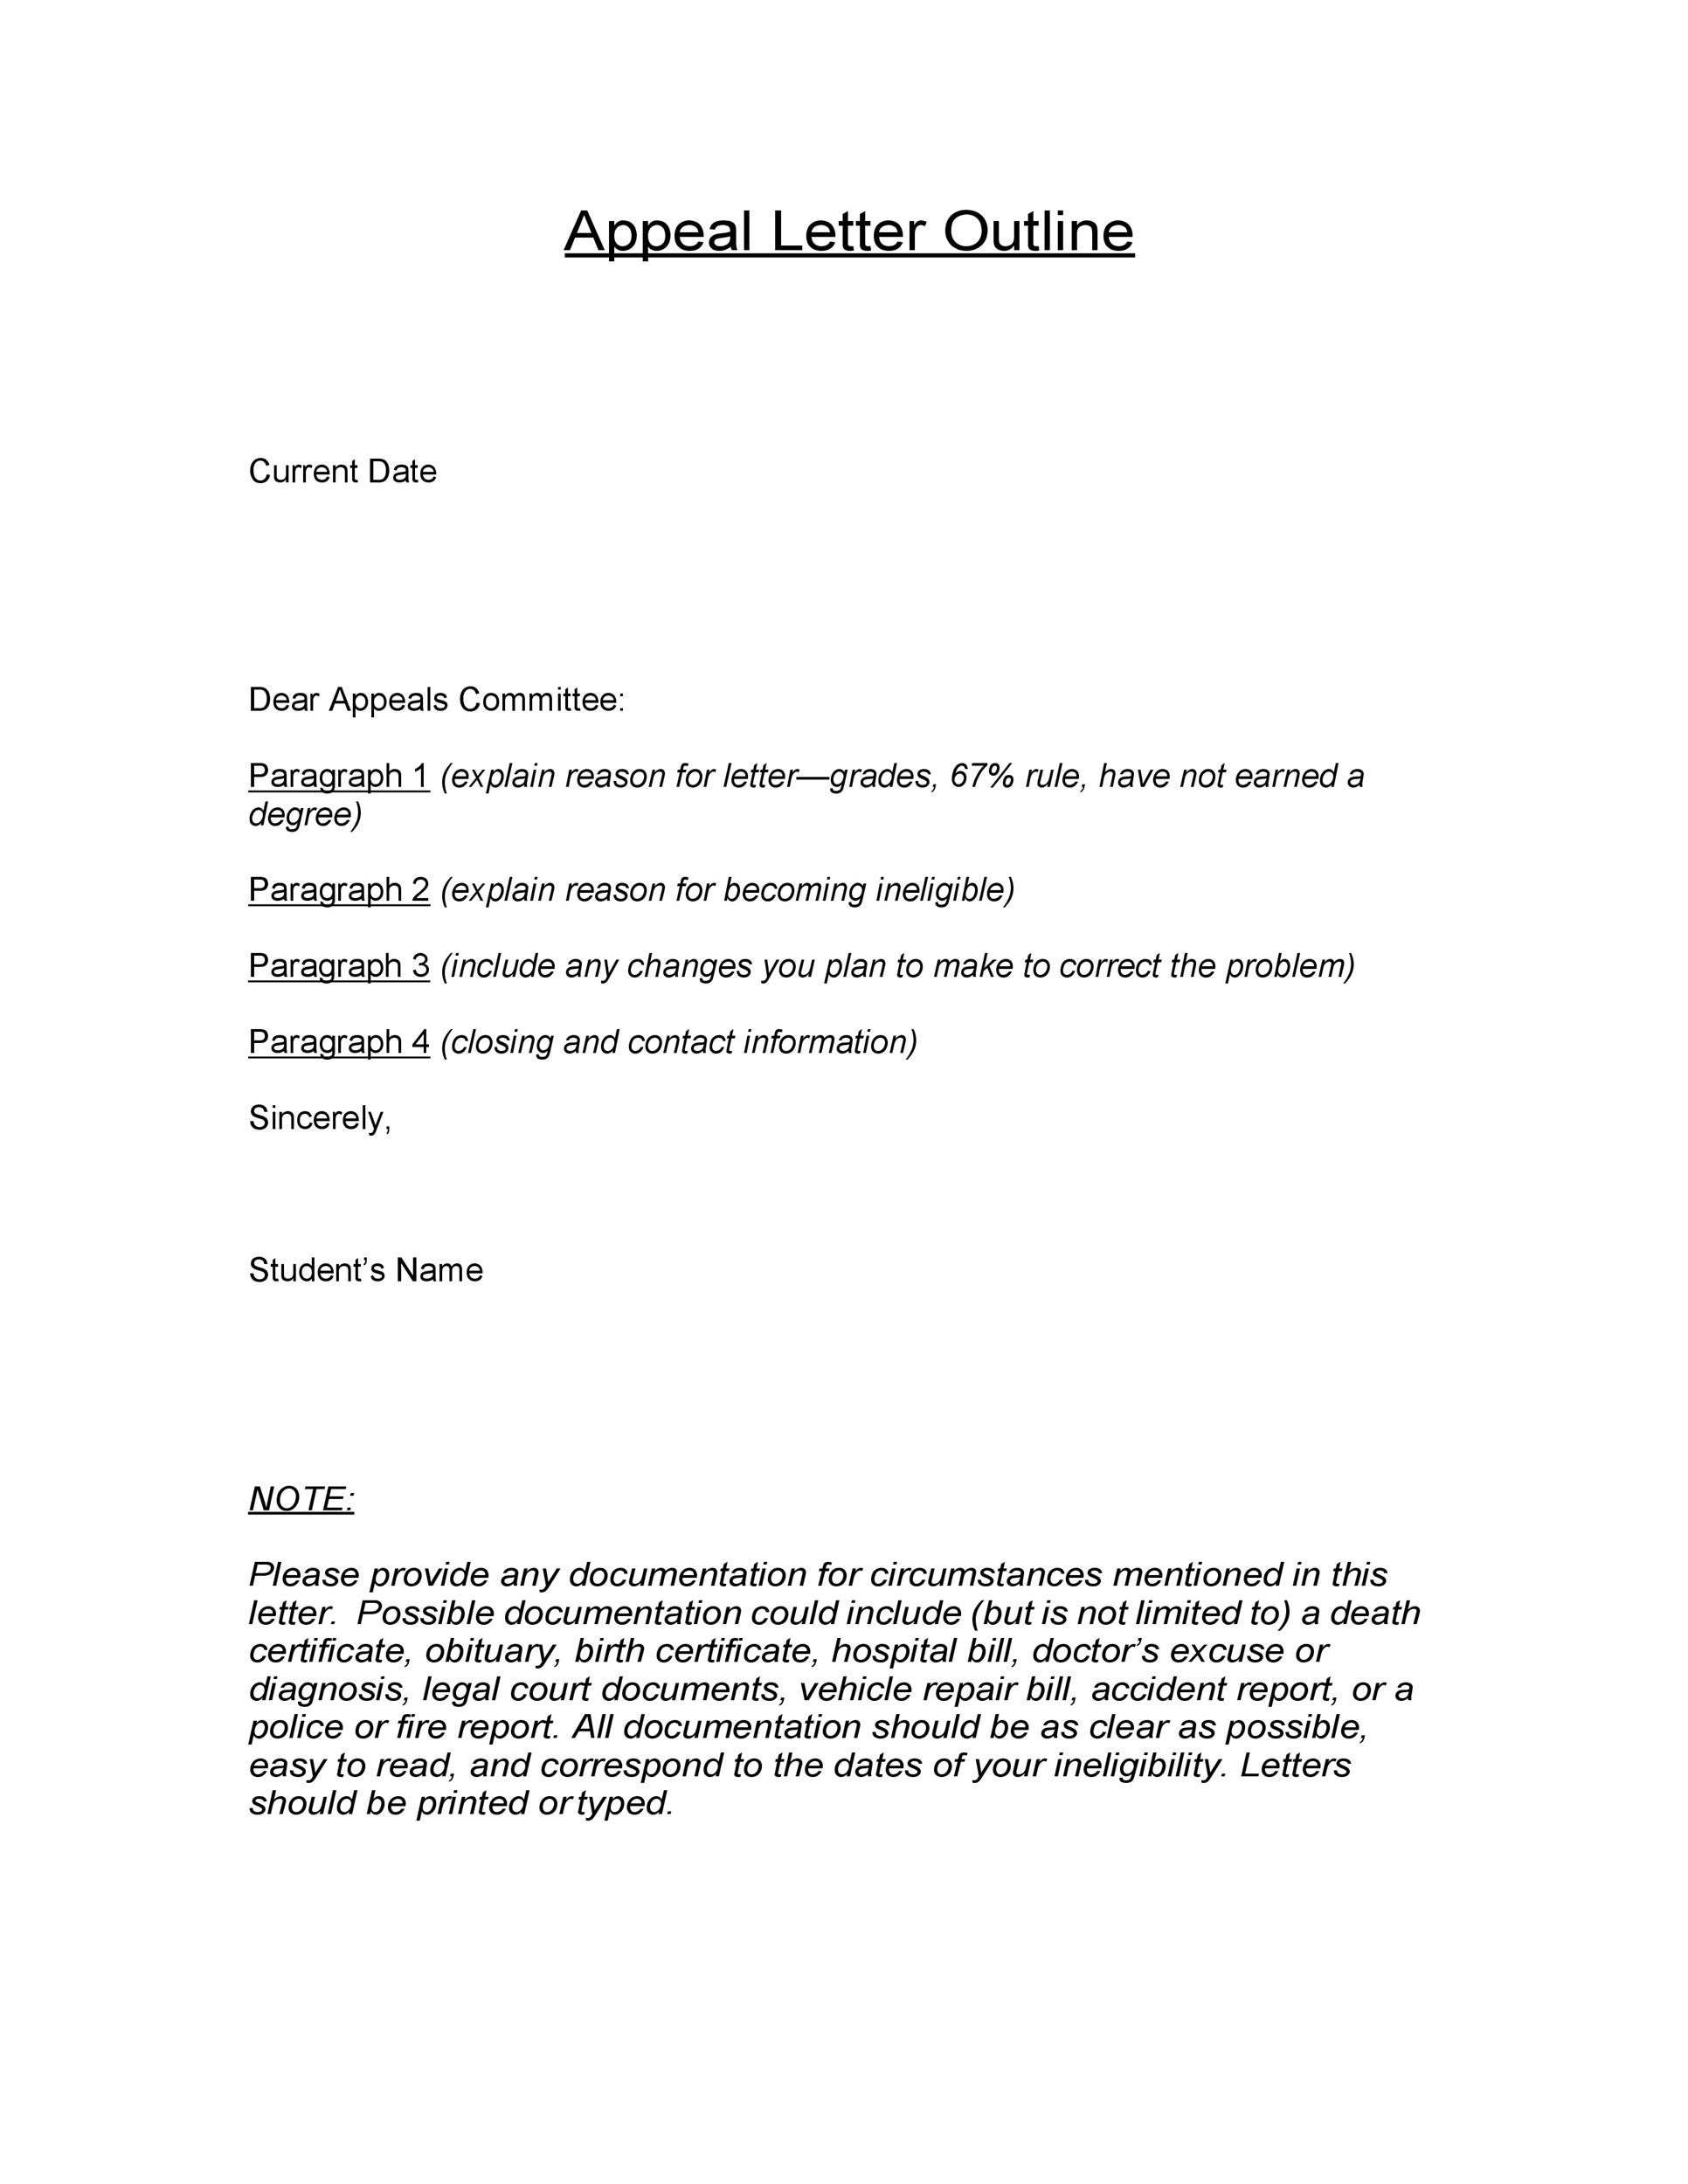 Free appeal letter 12